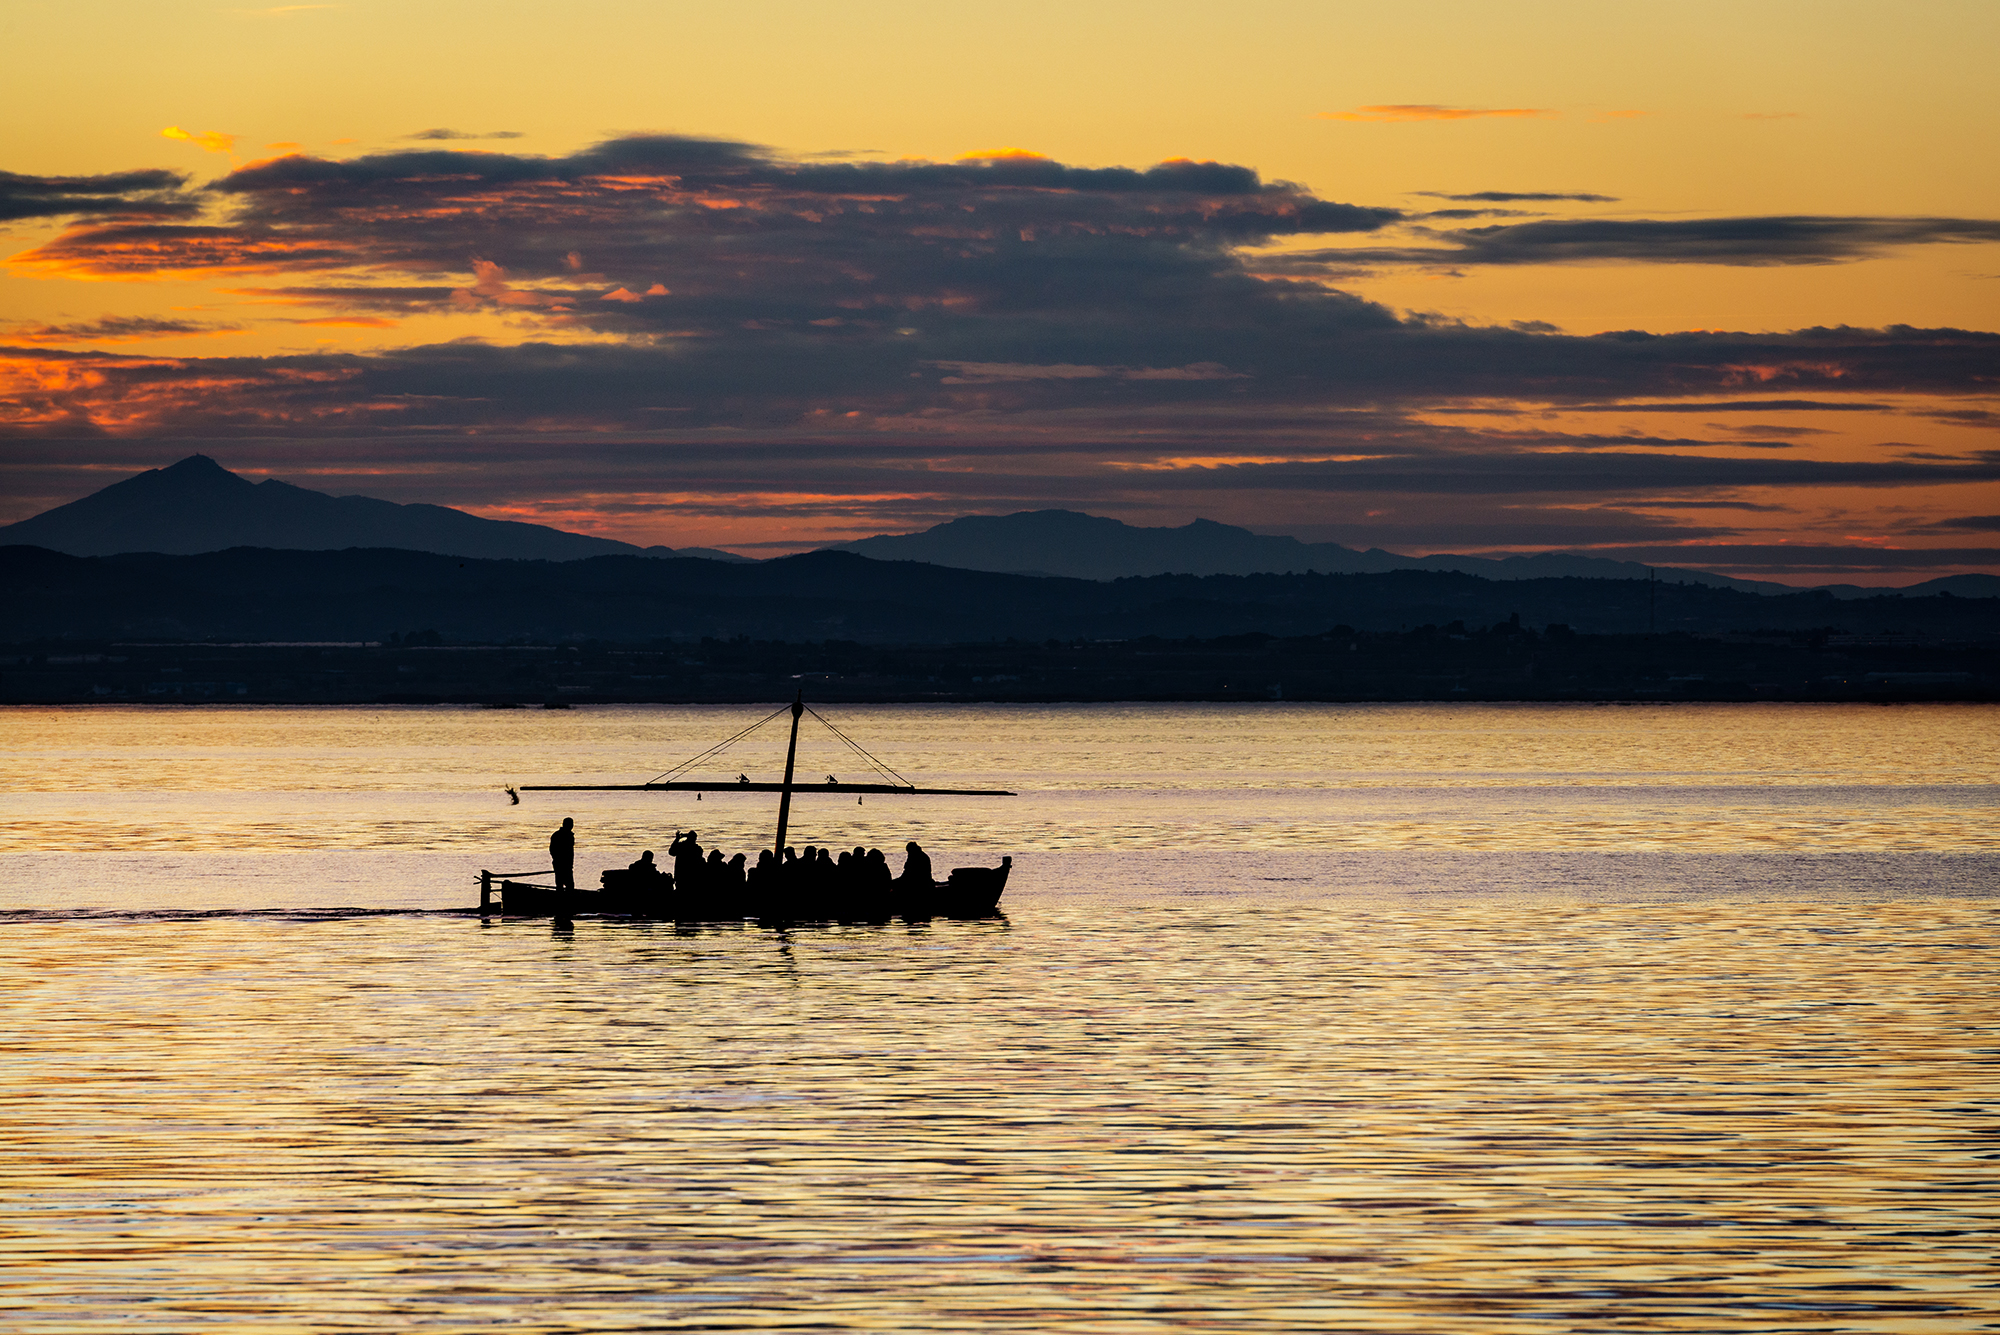 Silhouette of a small traditional boat at dusk in the Albufera in Valencia